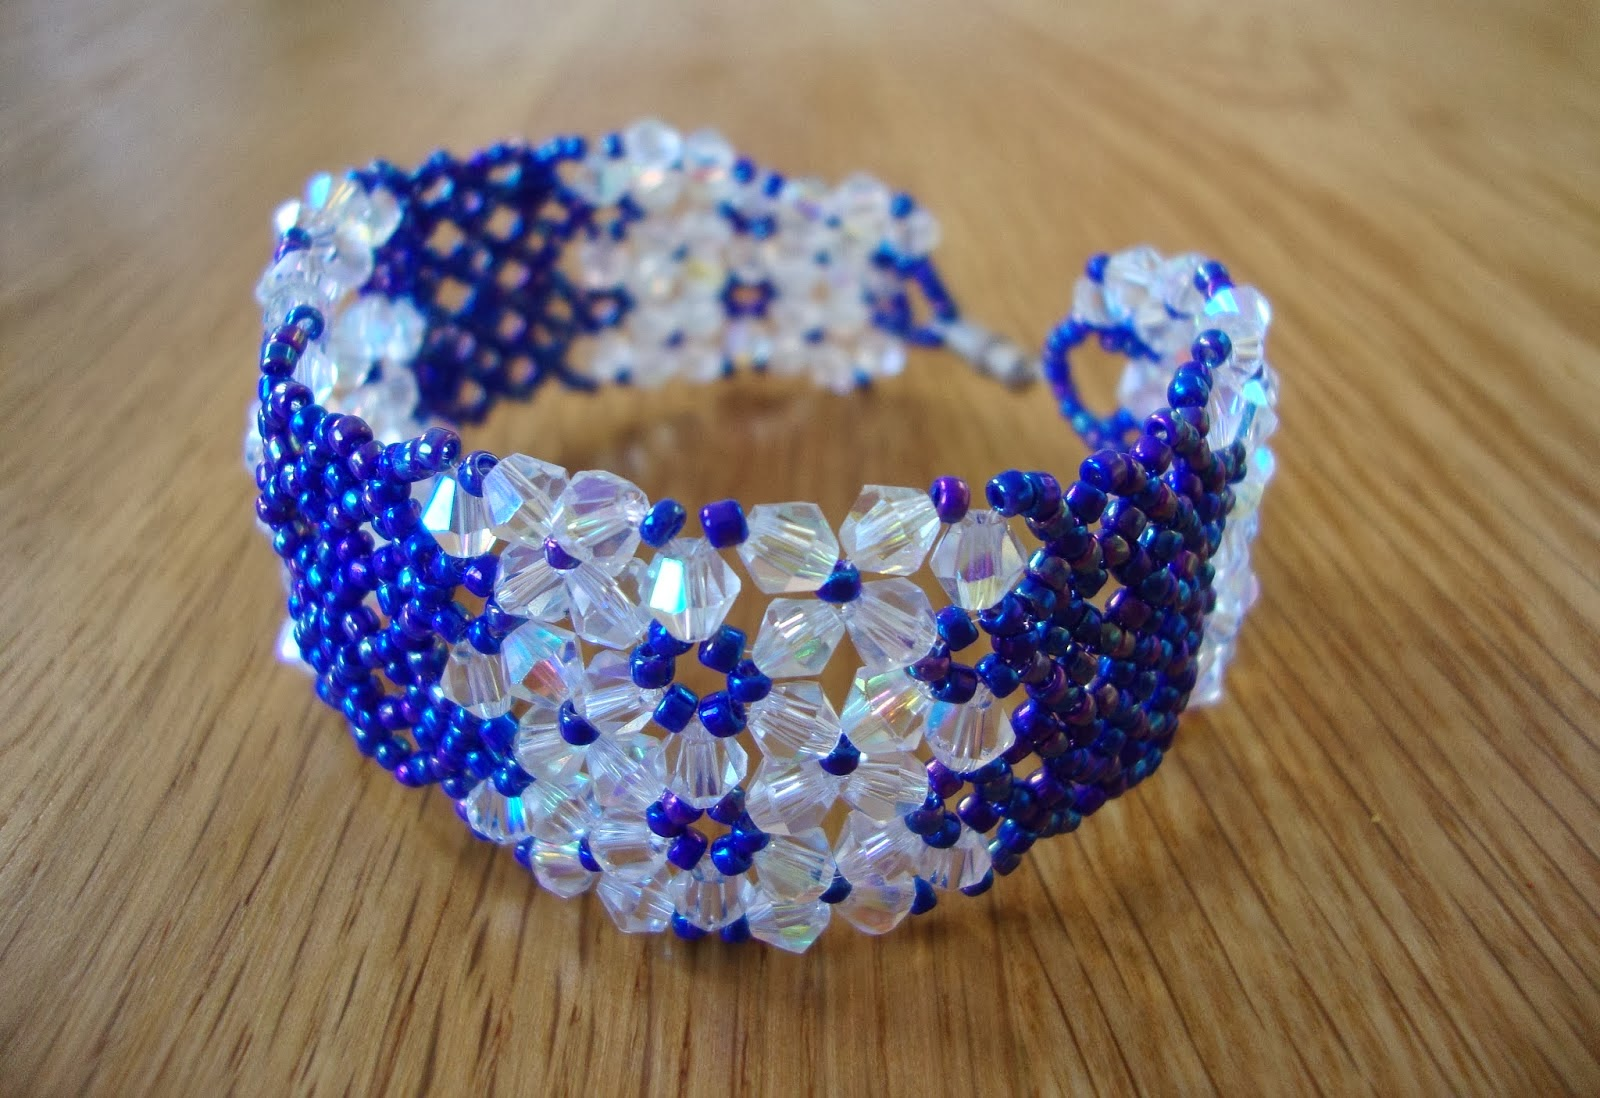 http://strawberrybox-serenie.blogspot.co.uk/2014/01/wide-cuff-beaded-bracelet-tutorial.html